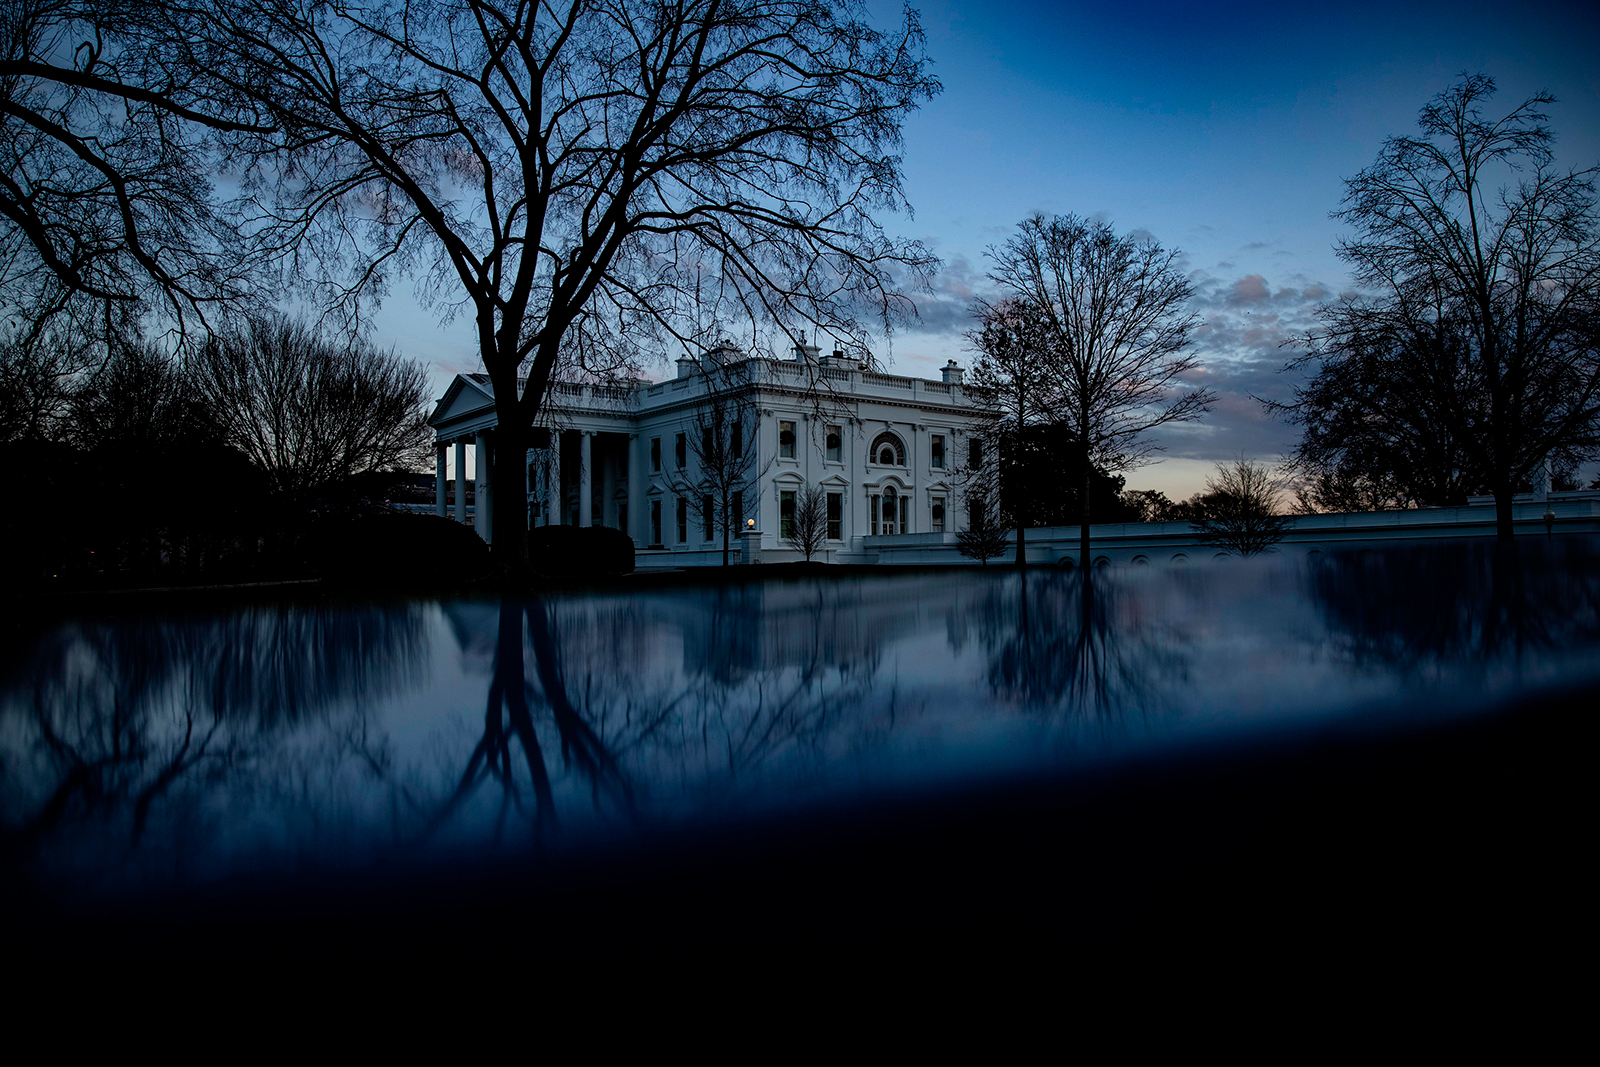 The sun sets over the White House in Washington, DC on December 21.